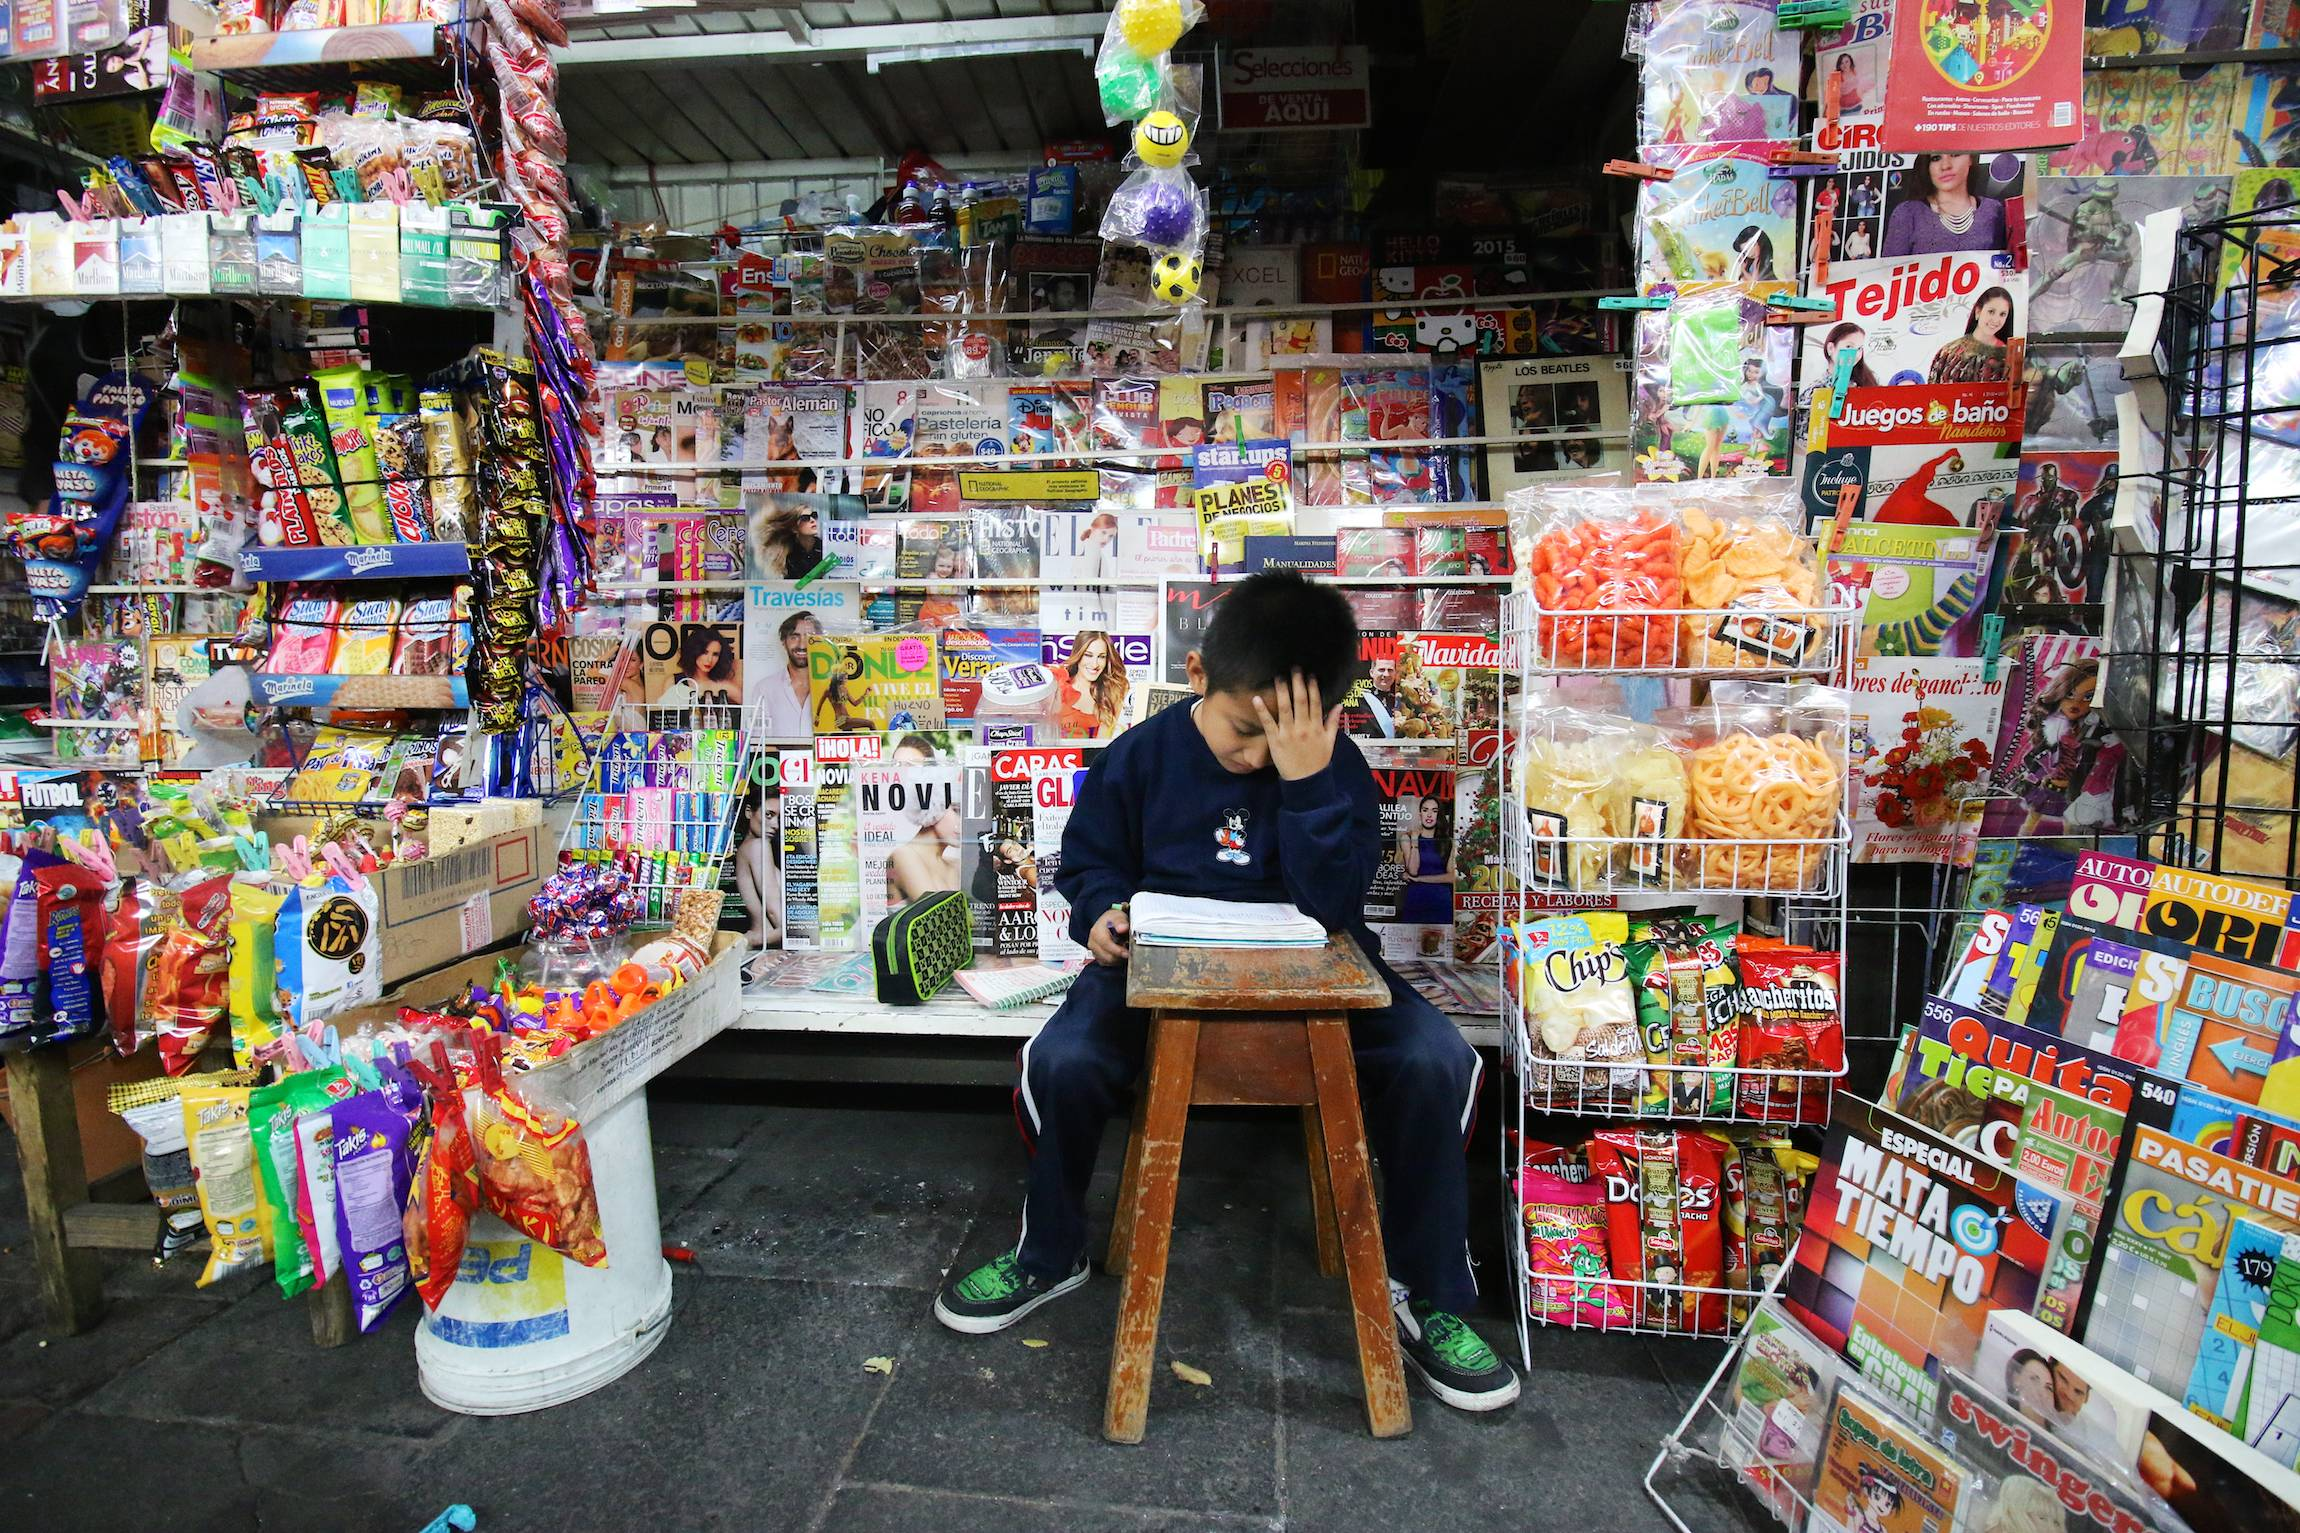 A boy studies, sitting in a kiosk in the streets of Mexico City, D.F., Friday, Nov. 21, 2014.